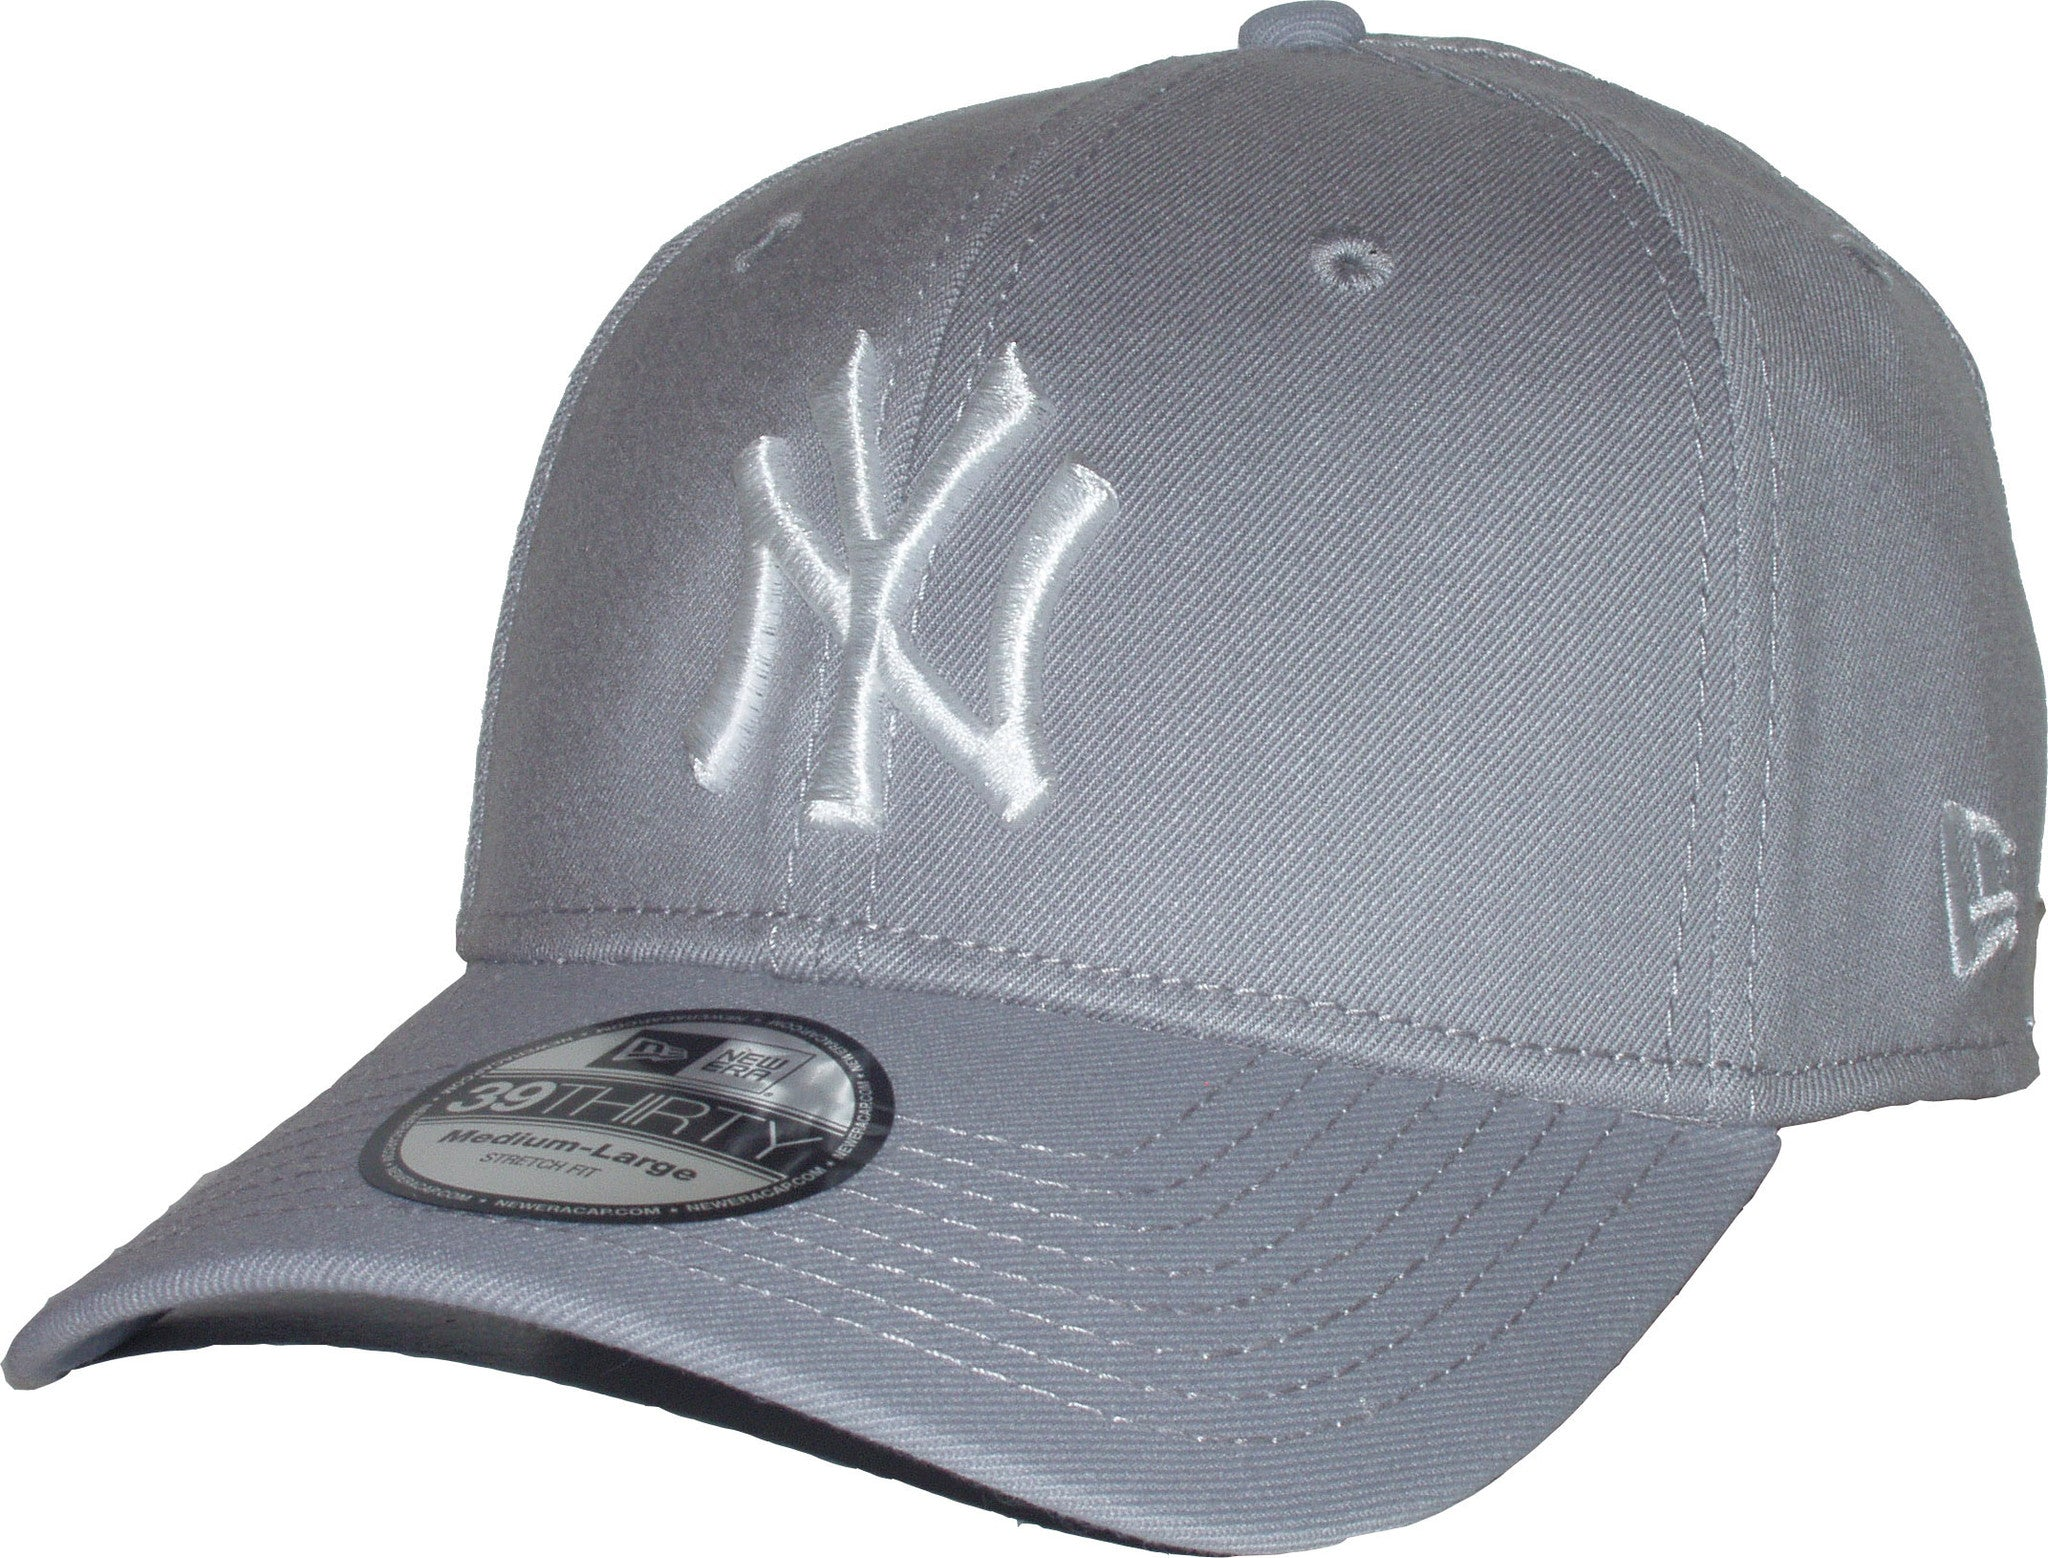 f86cdc38cde New Era 3930 League Basic NY Yankees Stretch Fit Baseball Cap - Grey White  ...